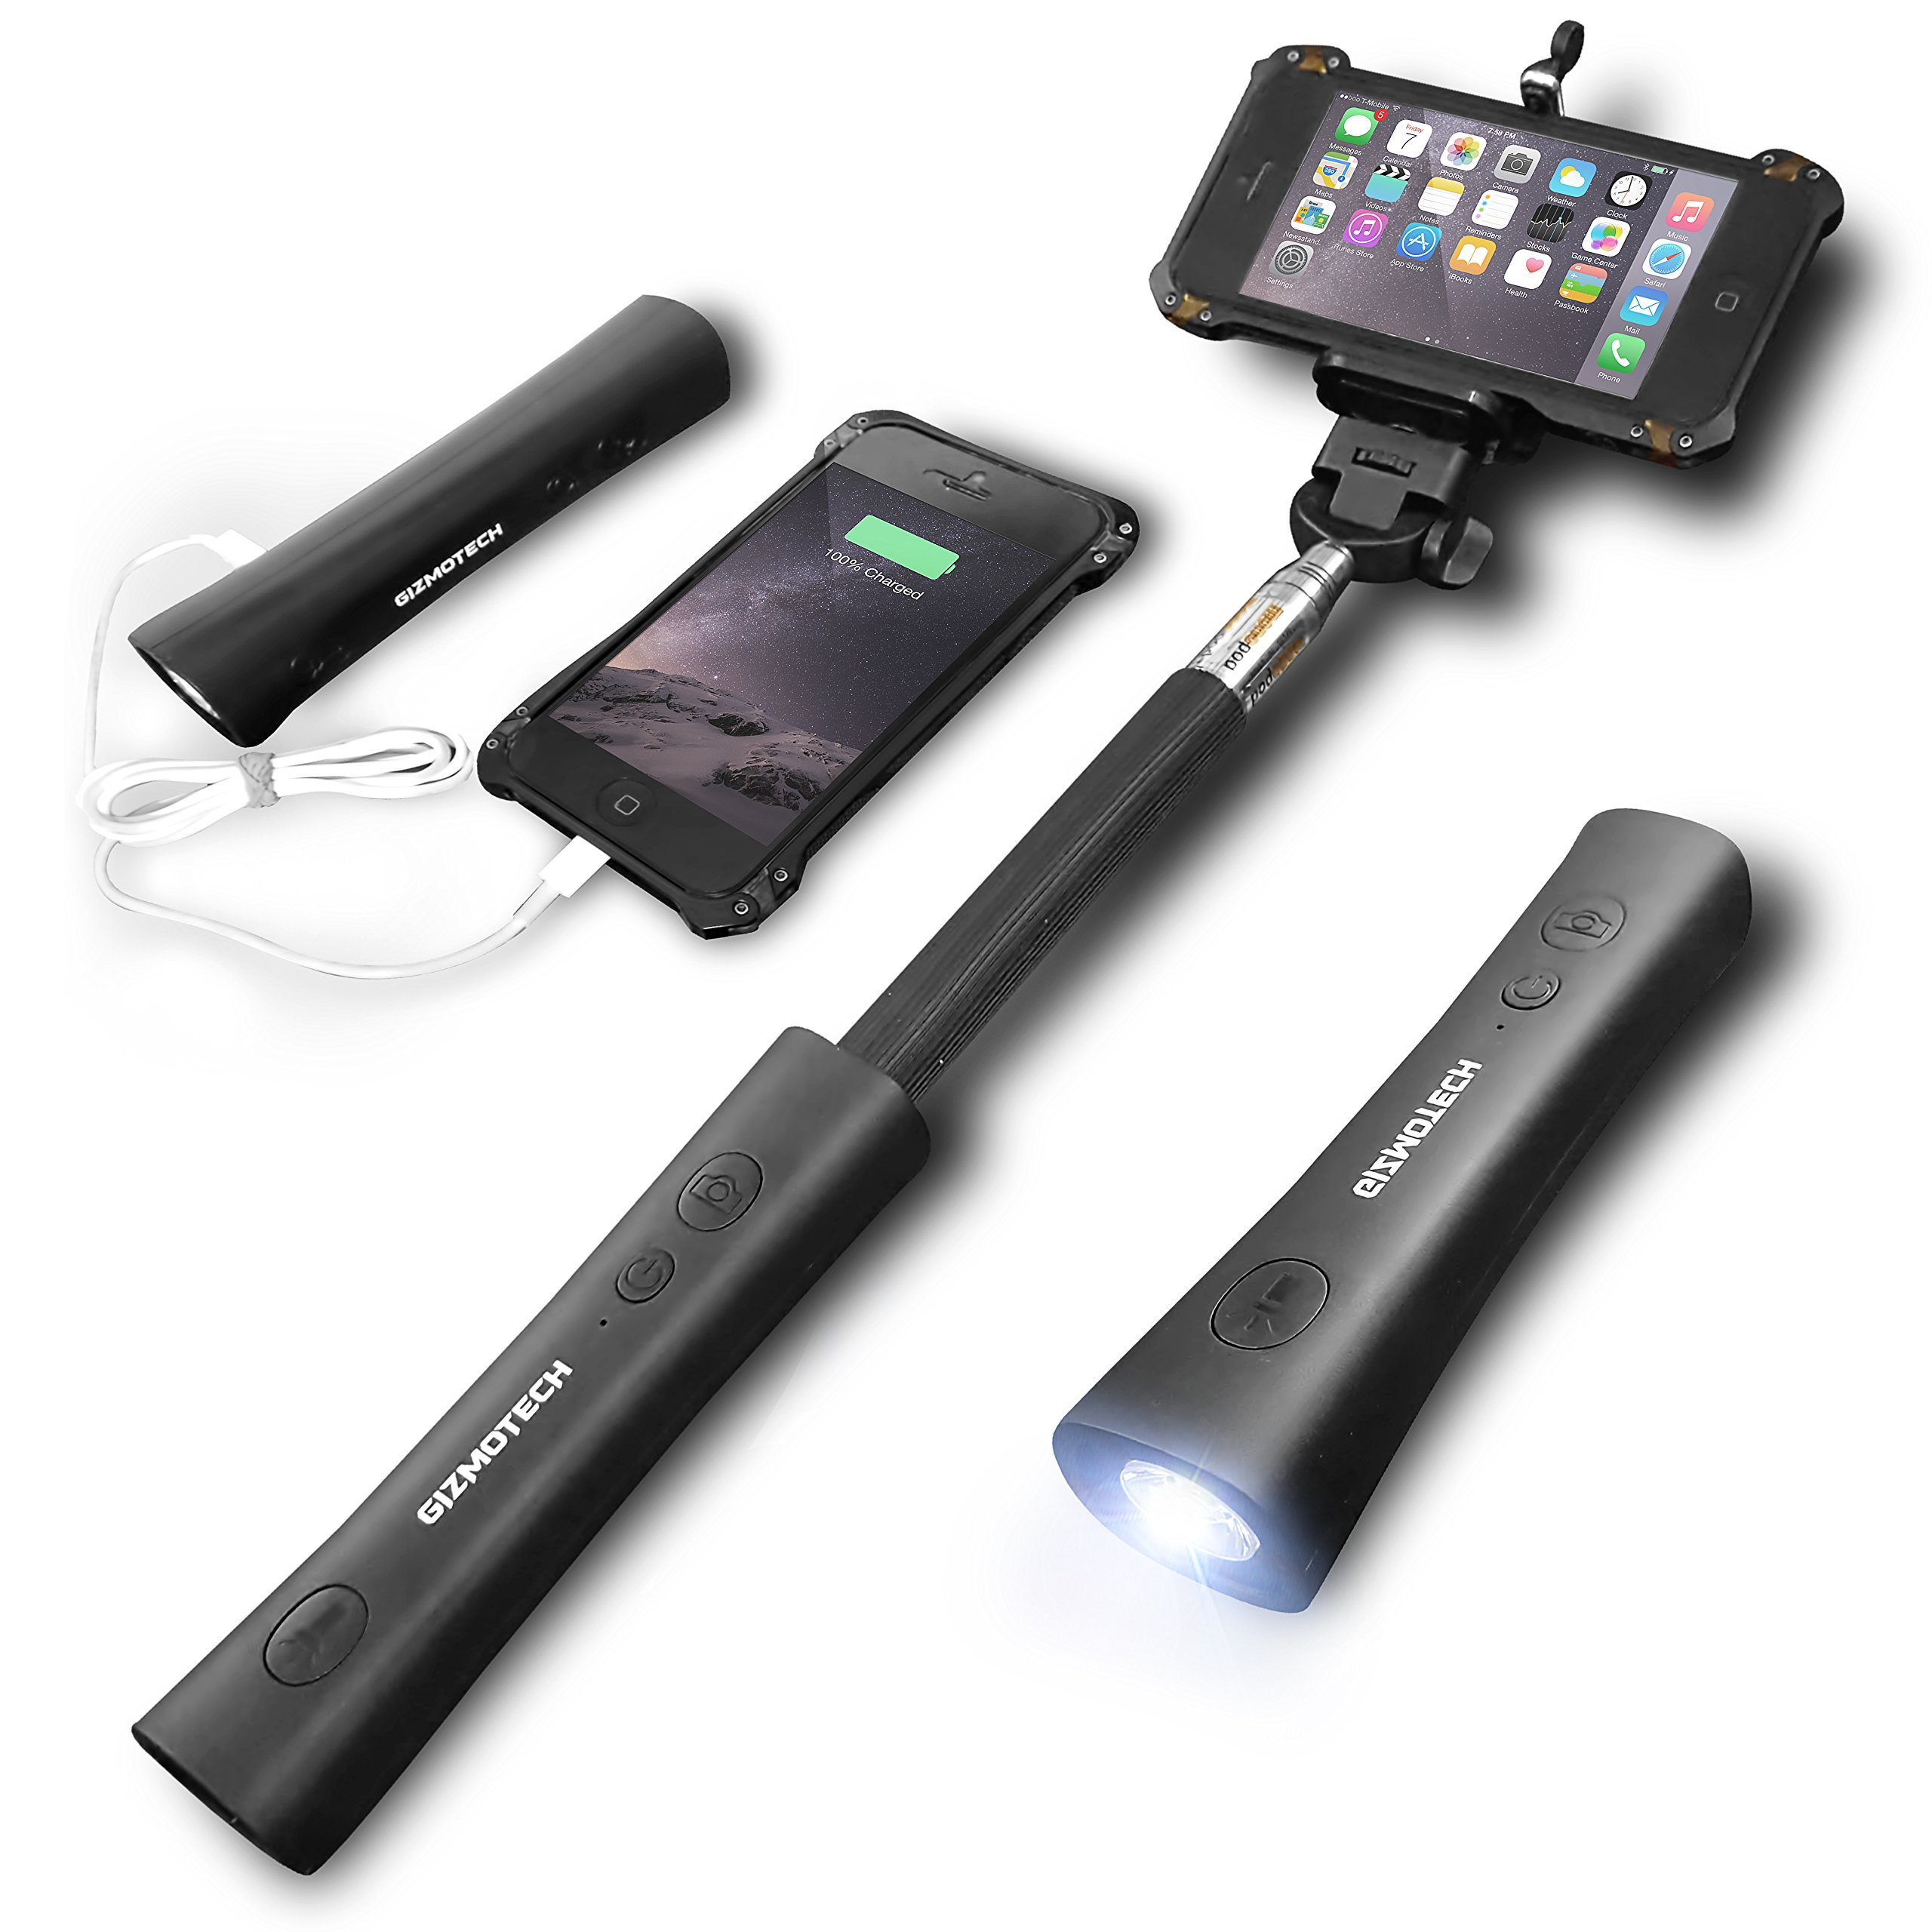 Gizmotech Selfie Stick, 3-in-1 Bluetooth Selfie Stick Extendable Monopod with Built-in Remote Shutter, Power Bank, Torch for iPhone 6, 6S, 6 Plus, 5, 5S, 5C, Android